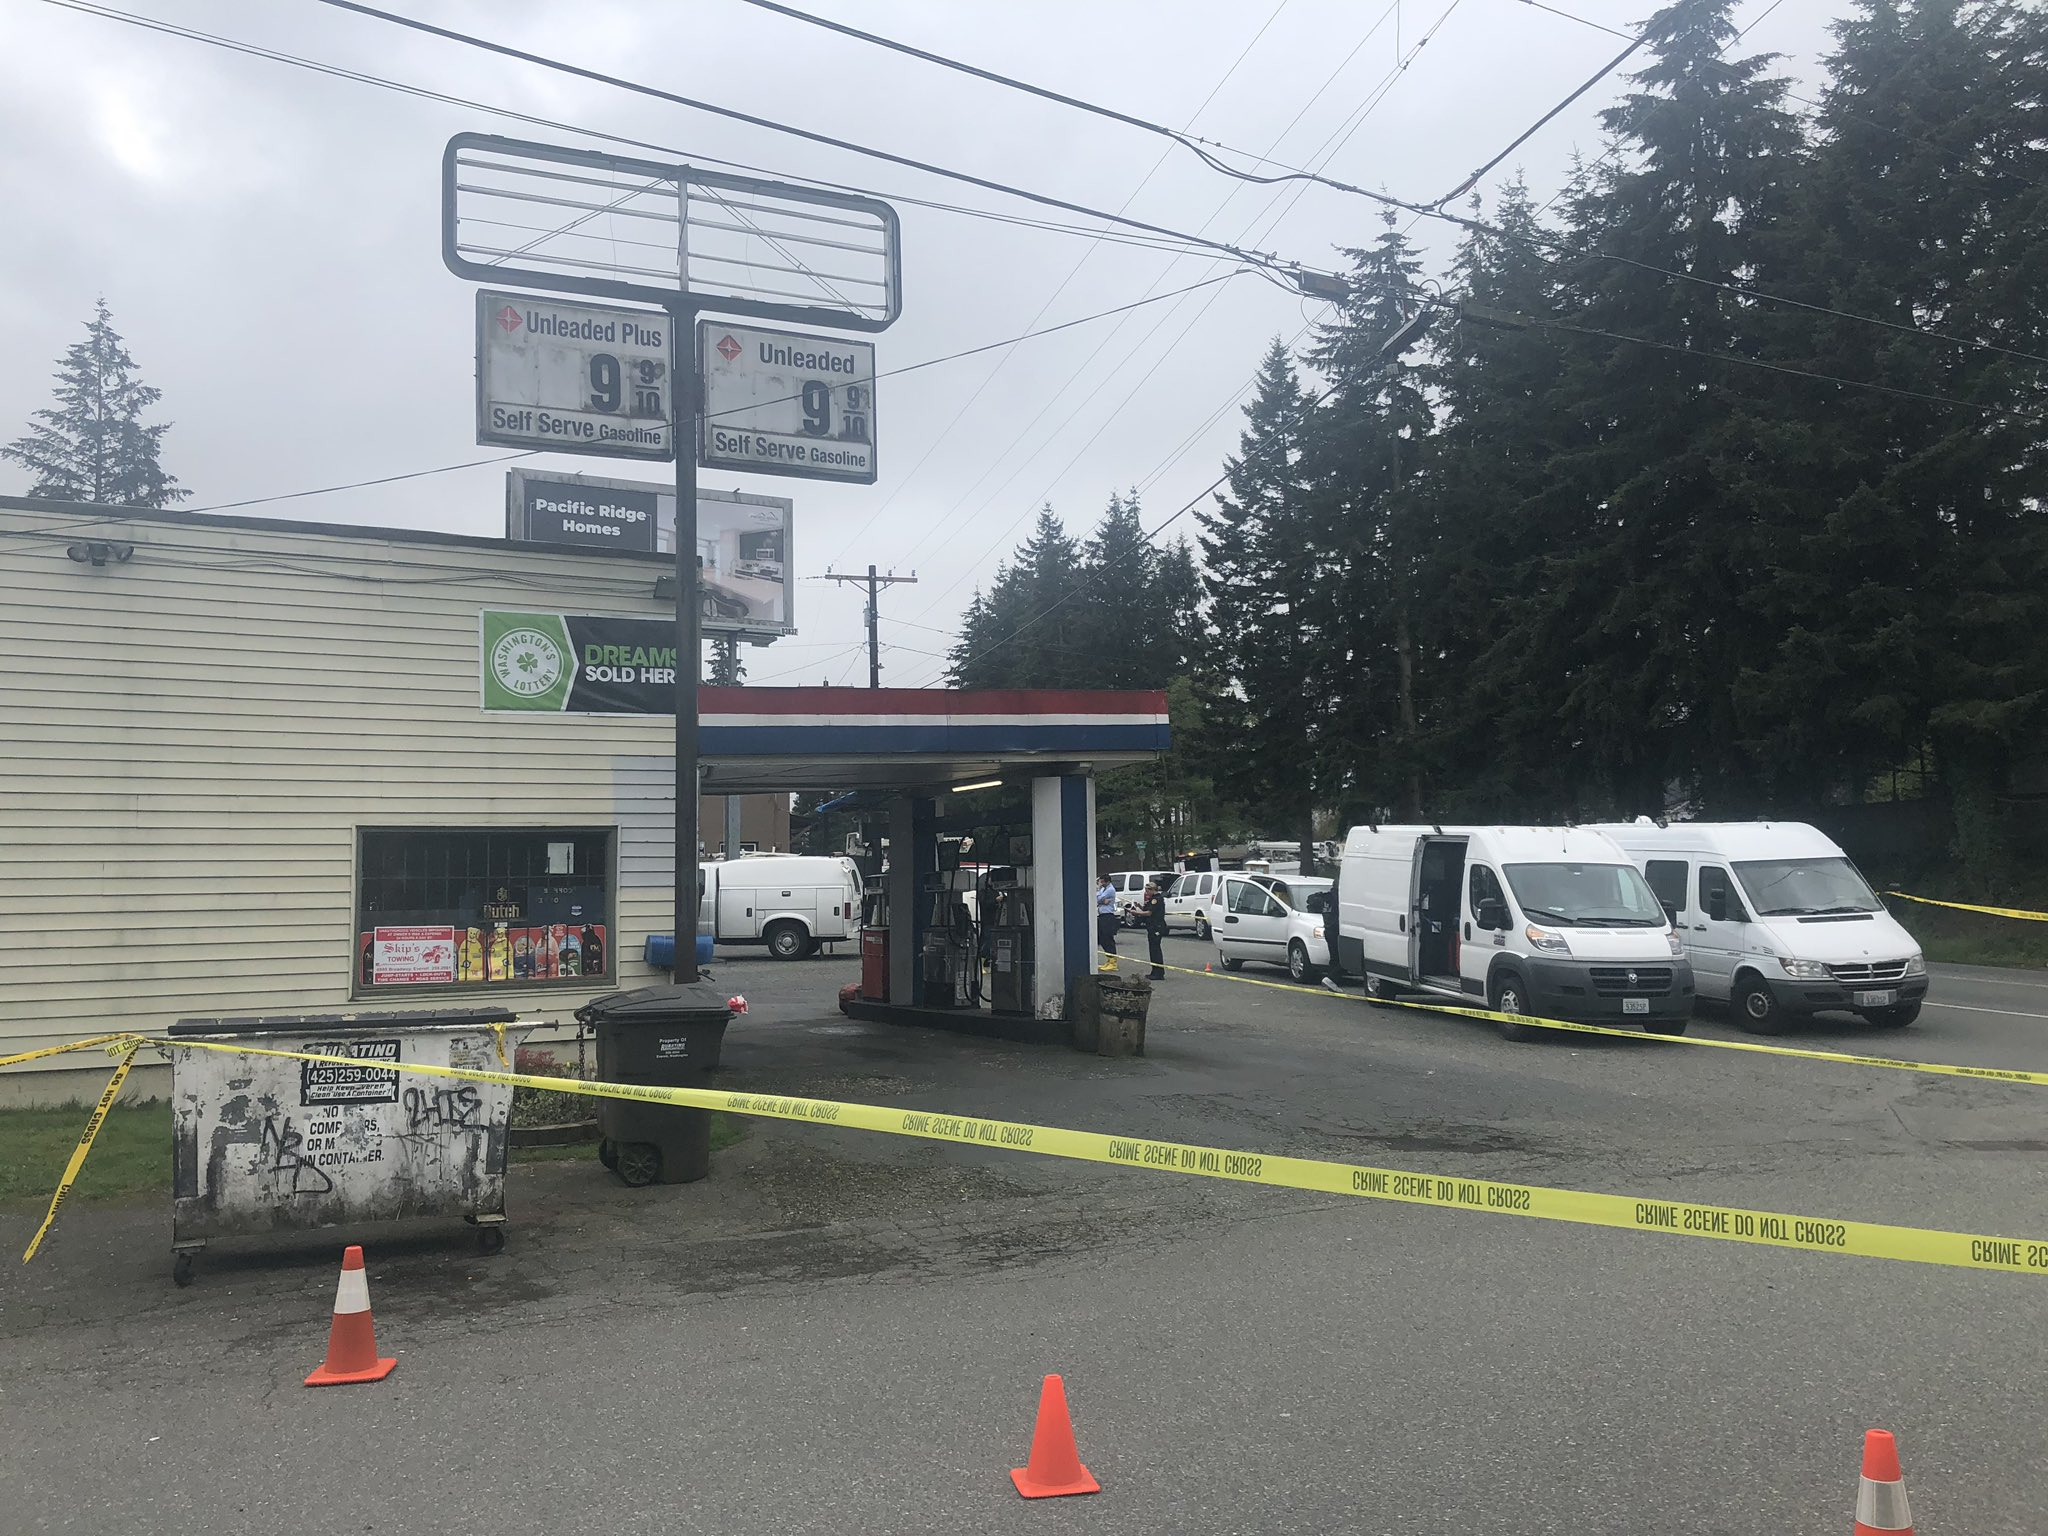 Clerk stabbed to death in brutal attack at small Everett grocery (KOMO Photo)